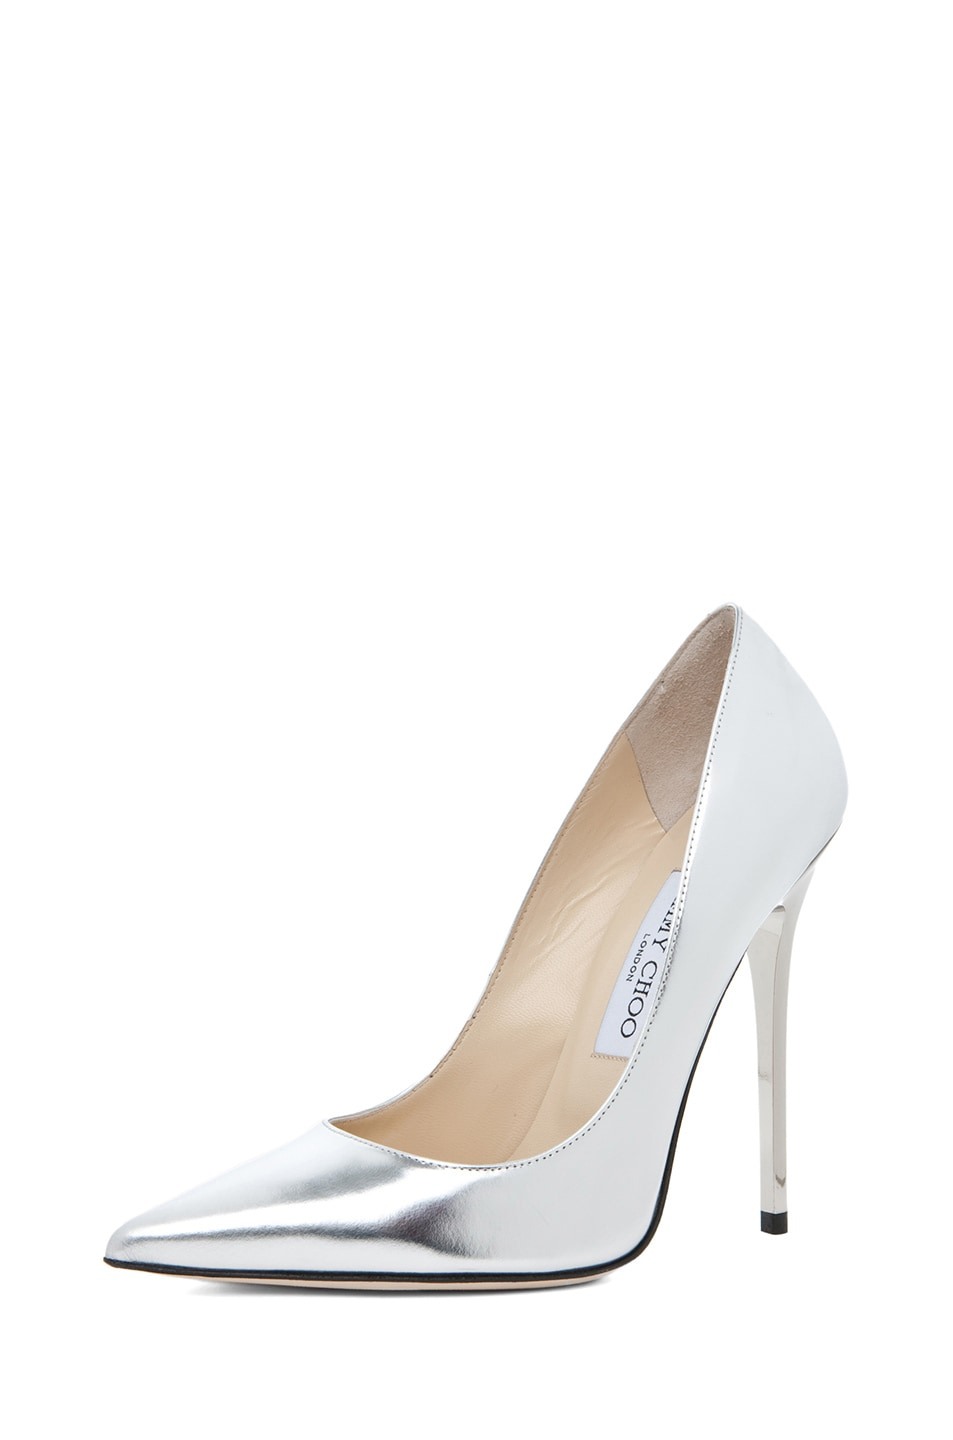 Image 2 of Jimmy Choo Anouk Heel in Silver